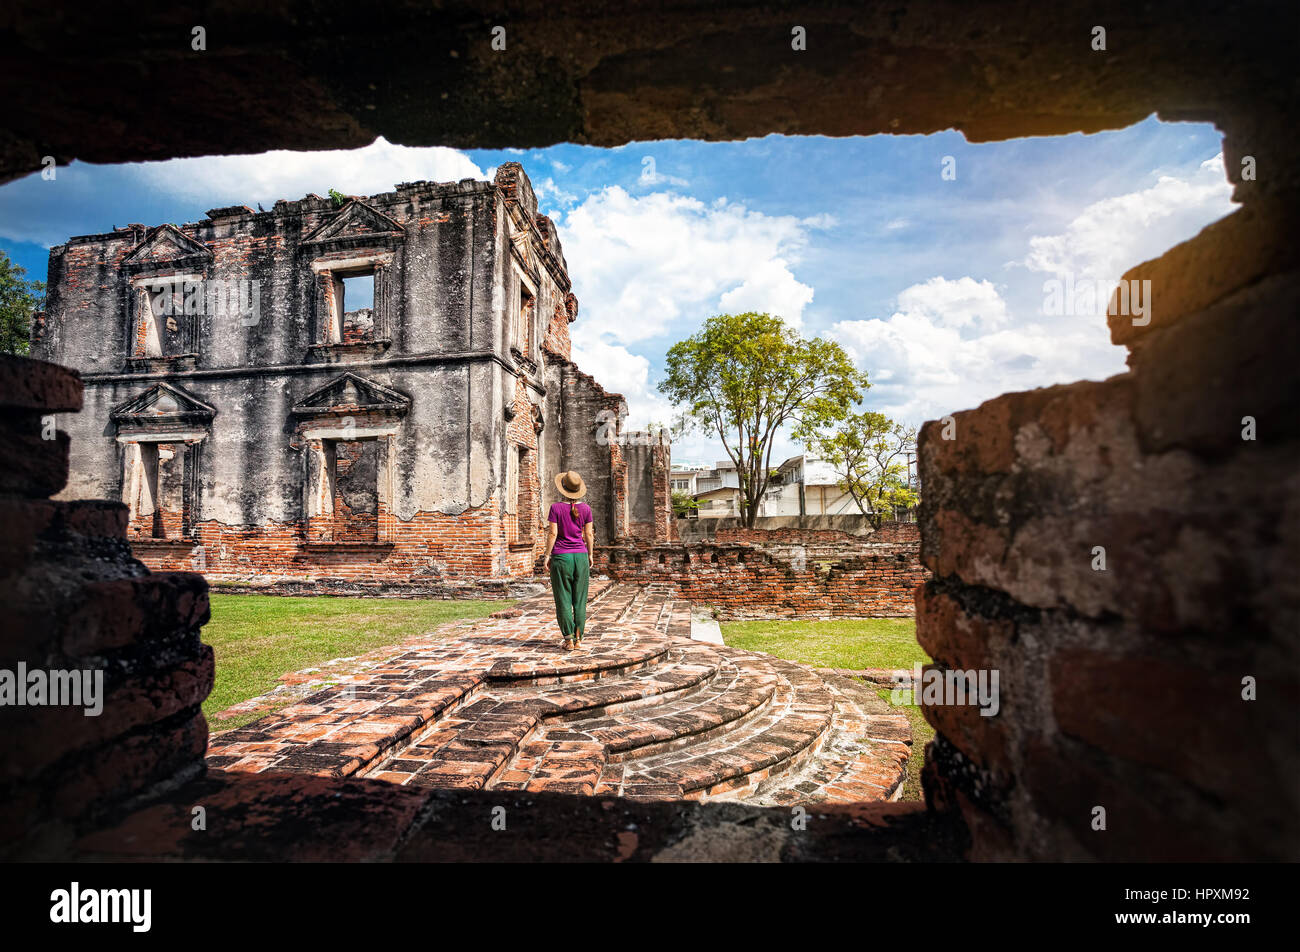 Woman in hat looking at ancient ruined Temple of city Lopburi, Thailand - Stock Image